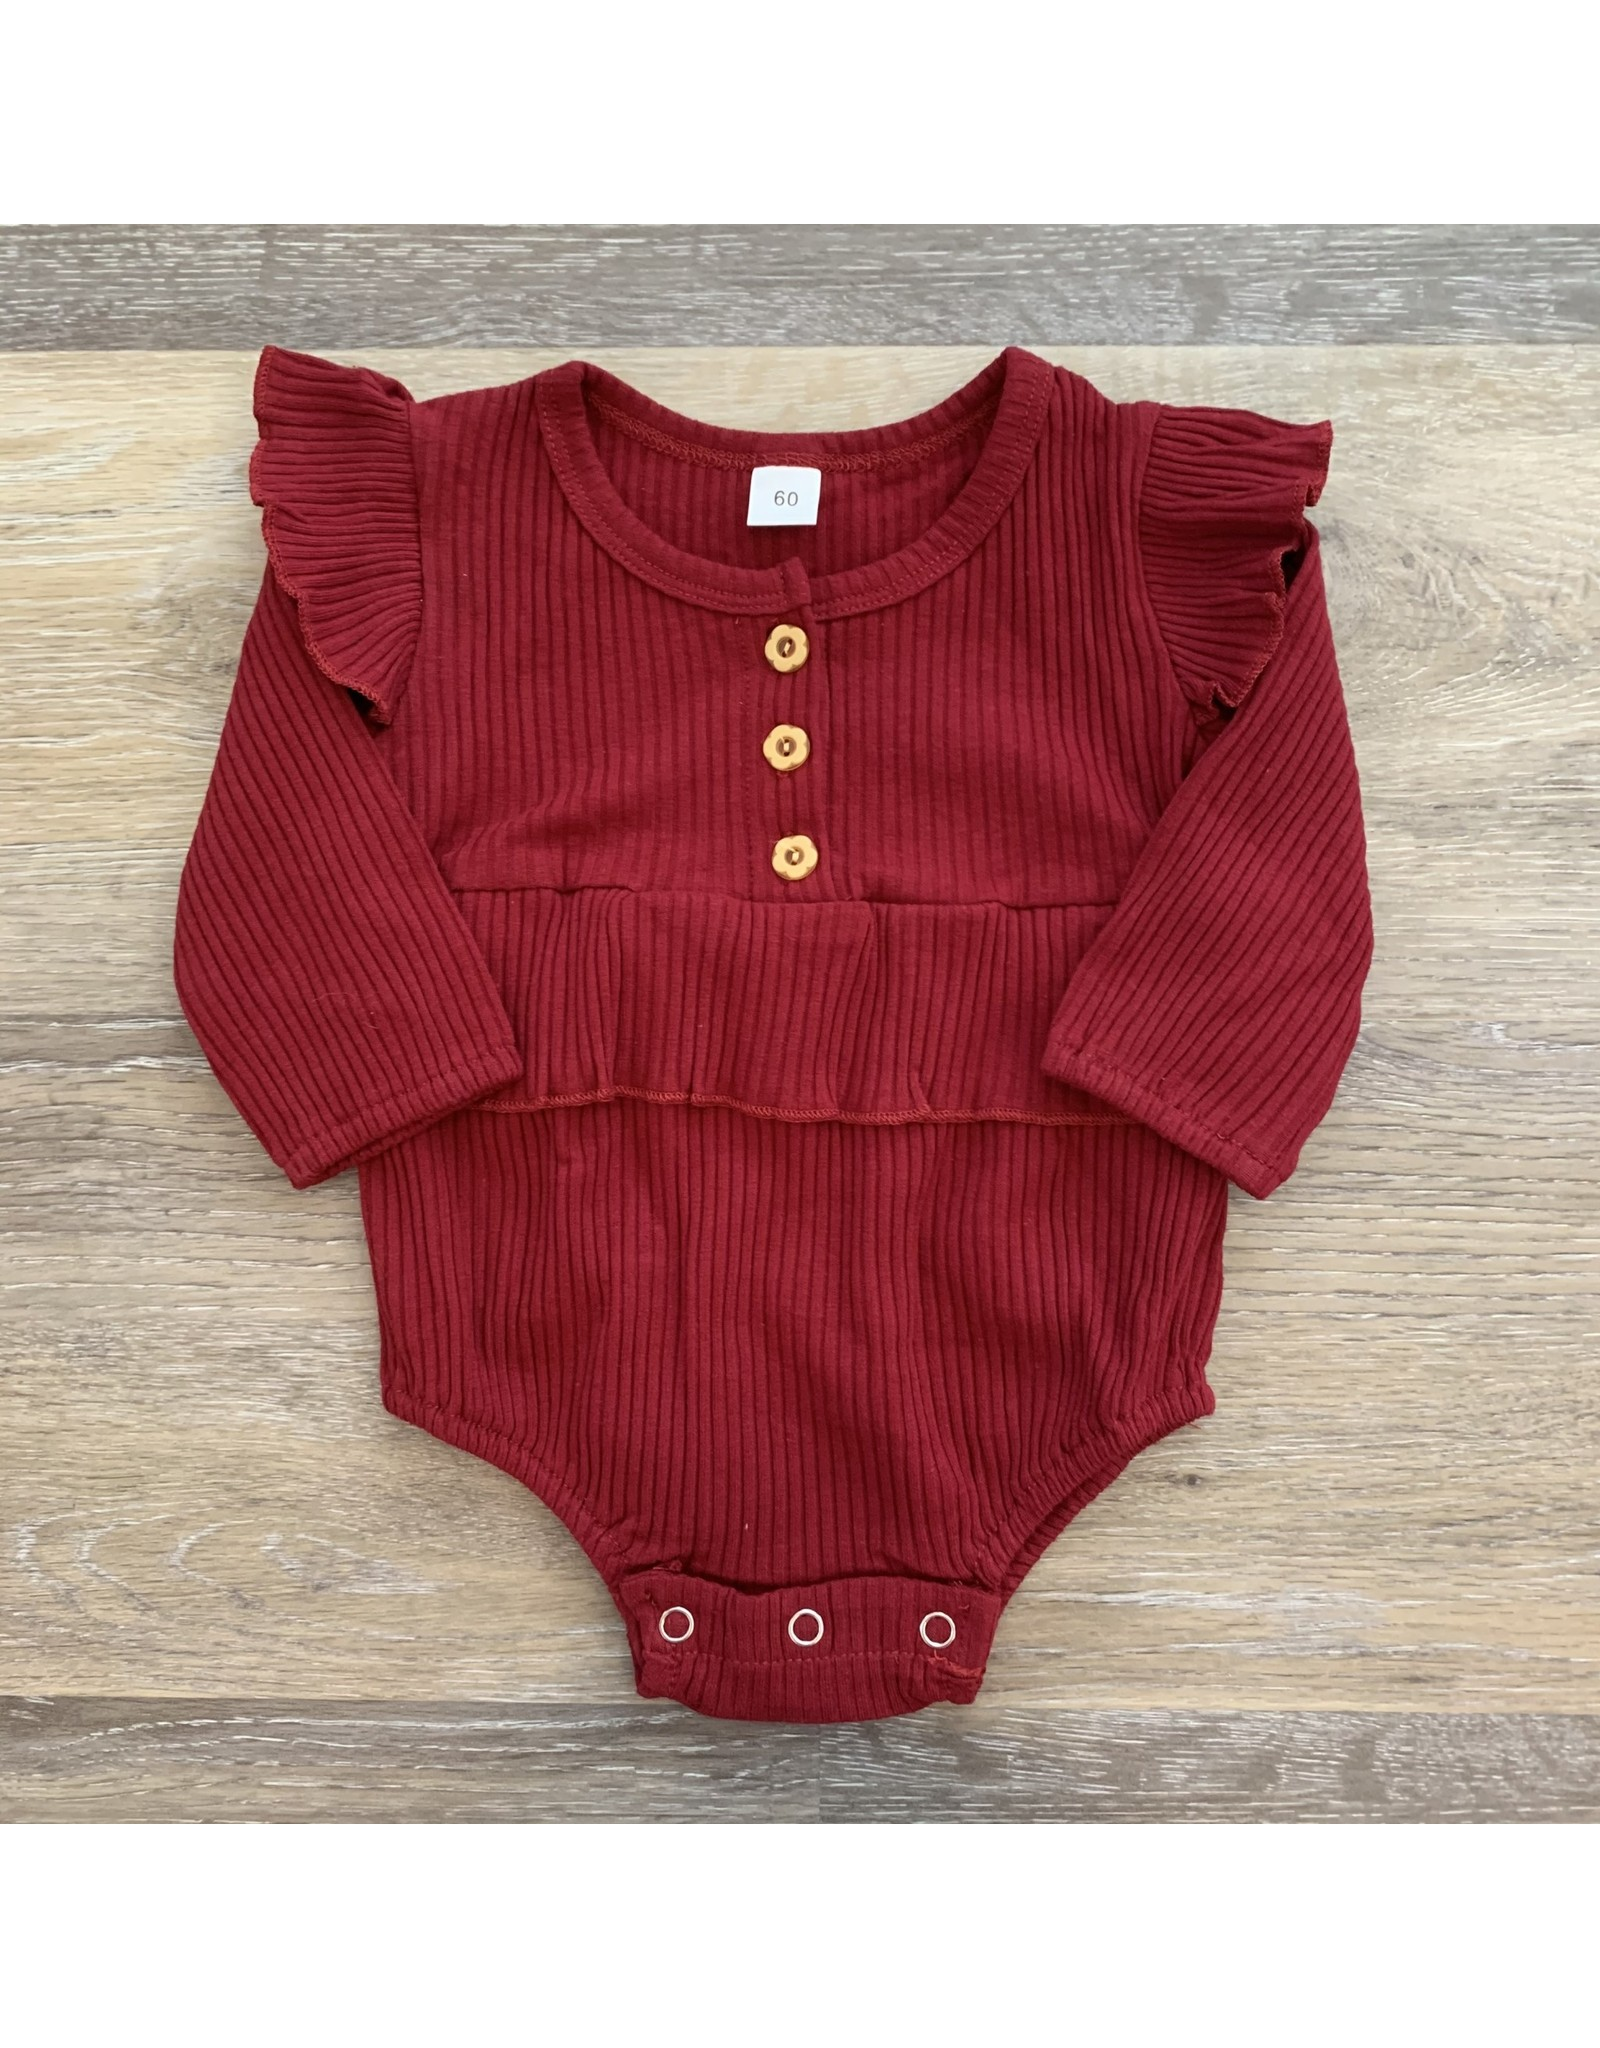 loved by Jade Presley loved by jade presley- Bella Ribbed Button Romper: Cranberry